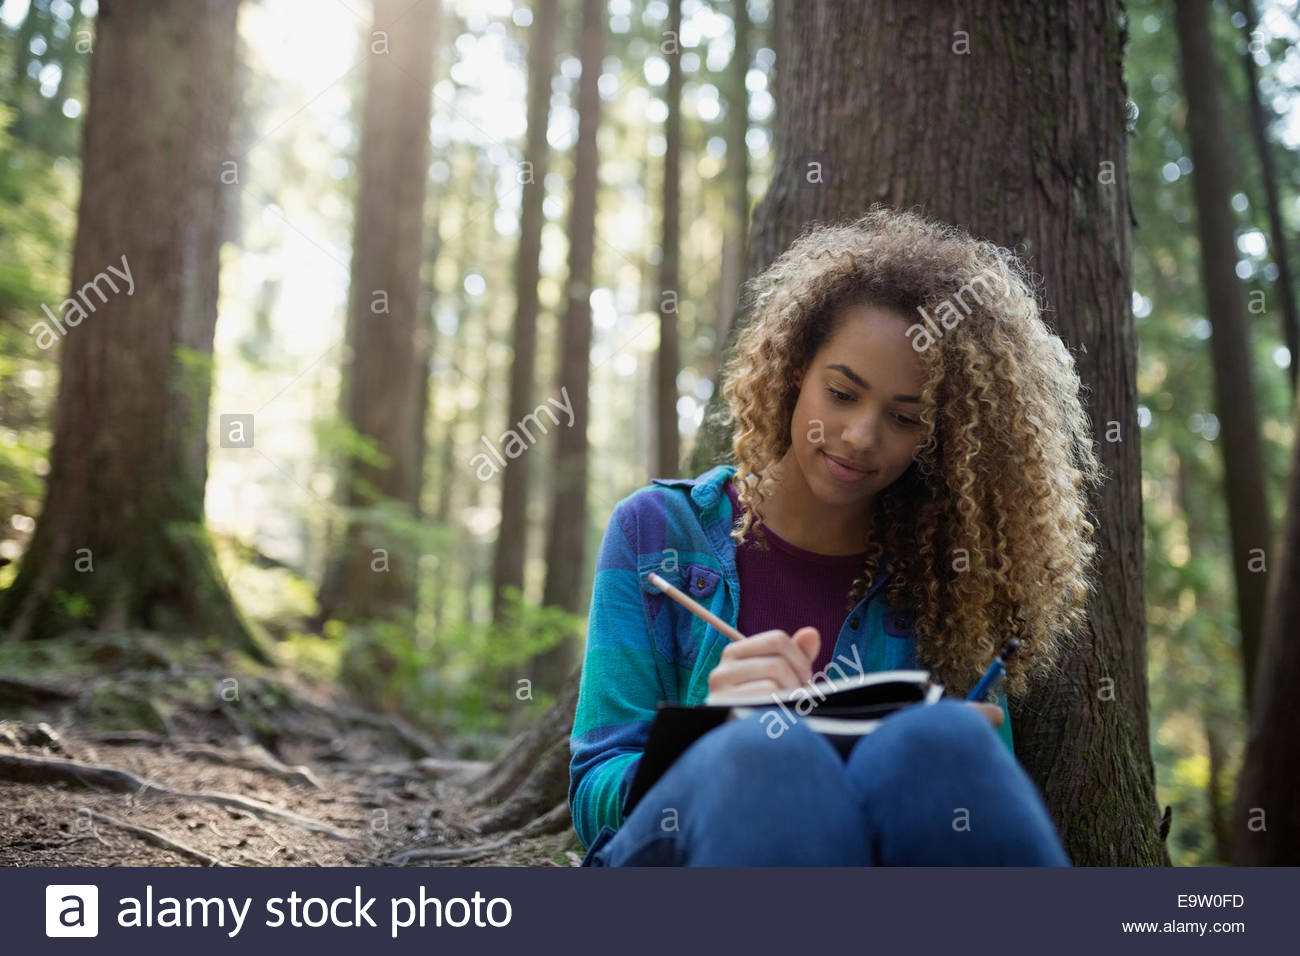 Woman writing in journal against tree in woods - Stock Image